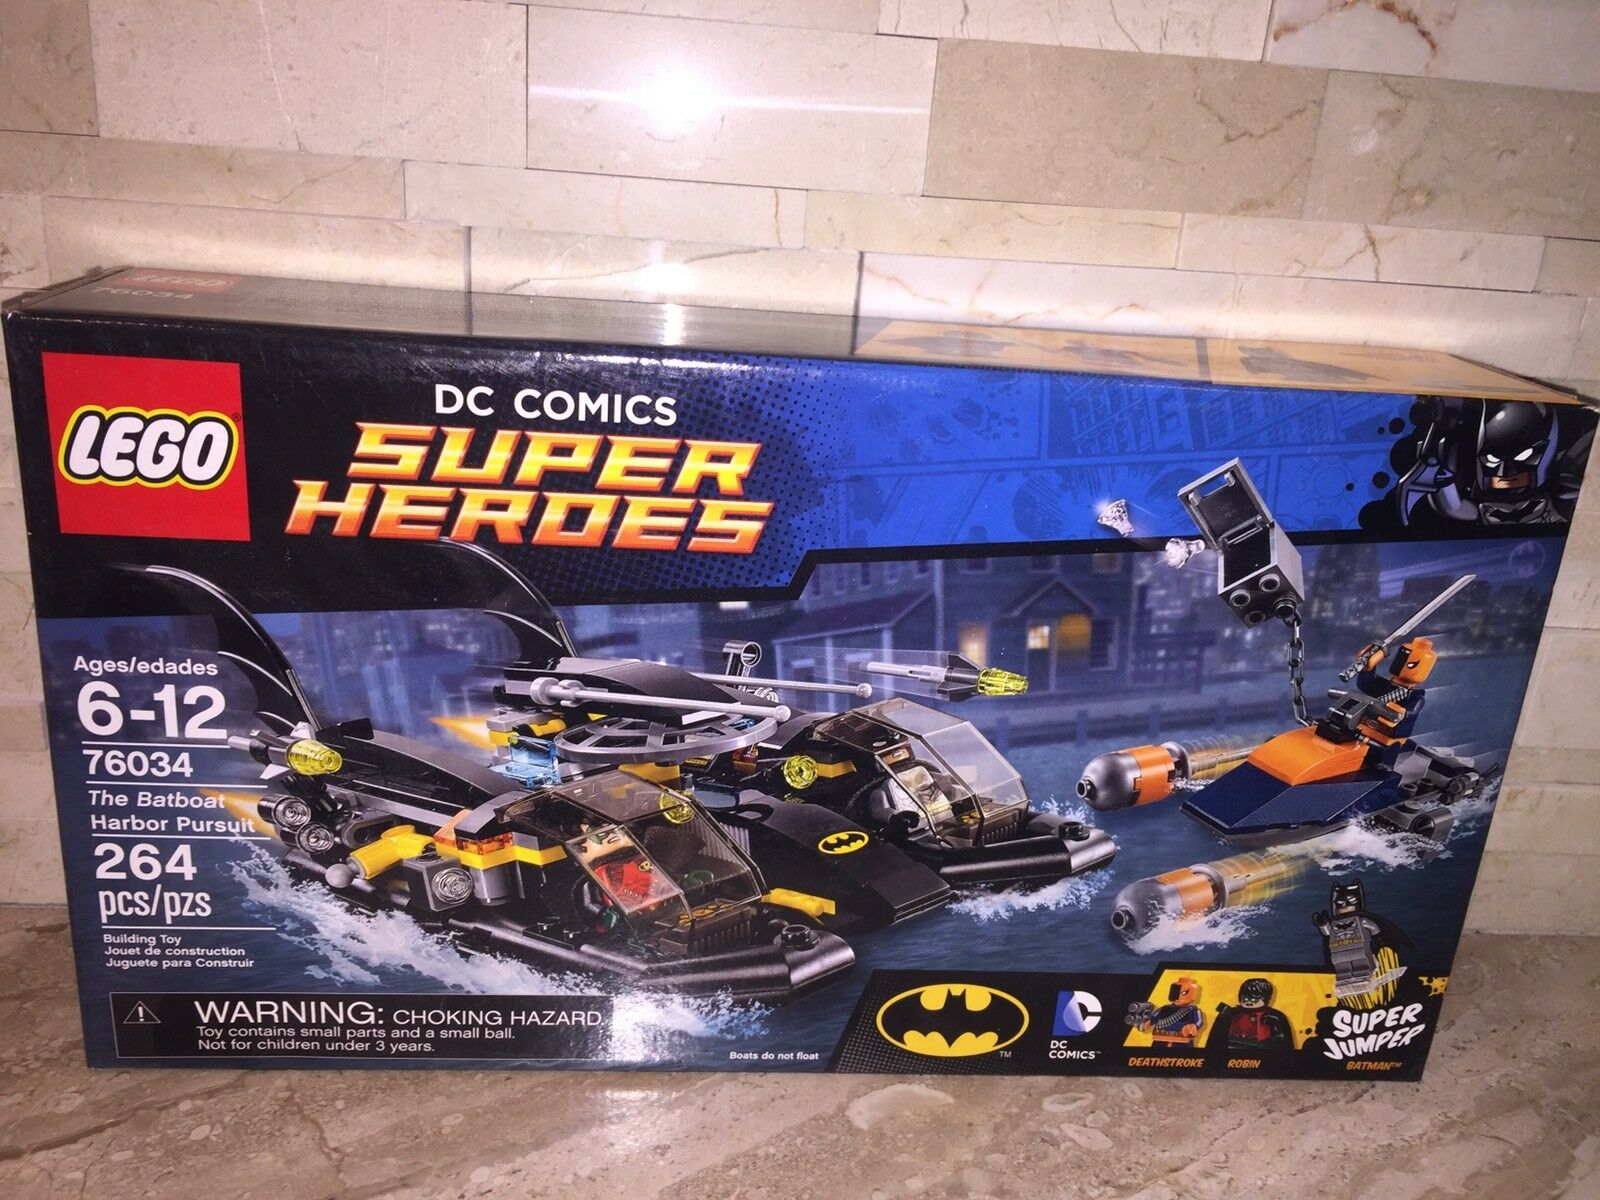 LEGO DC COMICS SUPER HEROES SET 76034 THE BATBOAT HARBOR PURSUIT